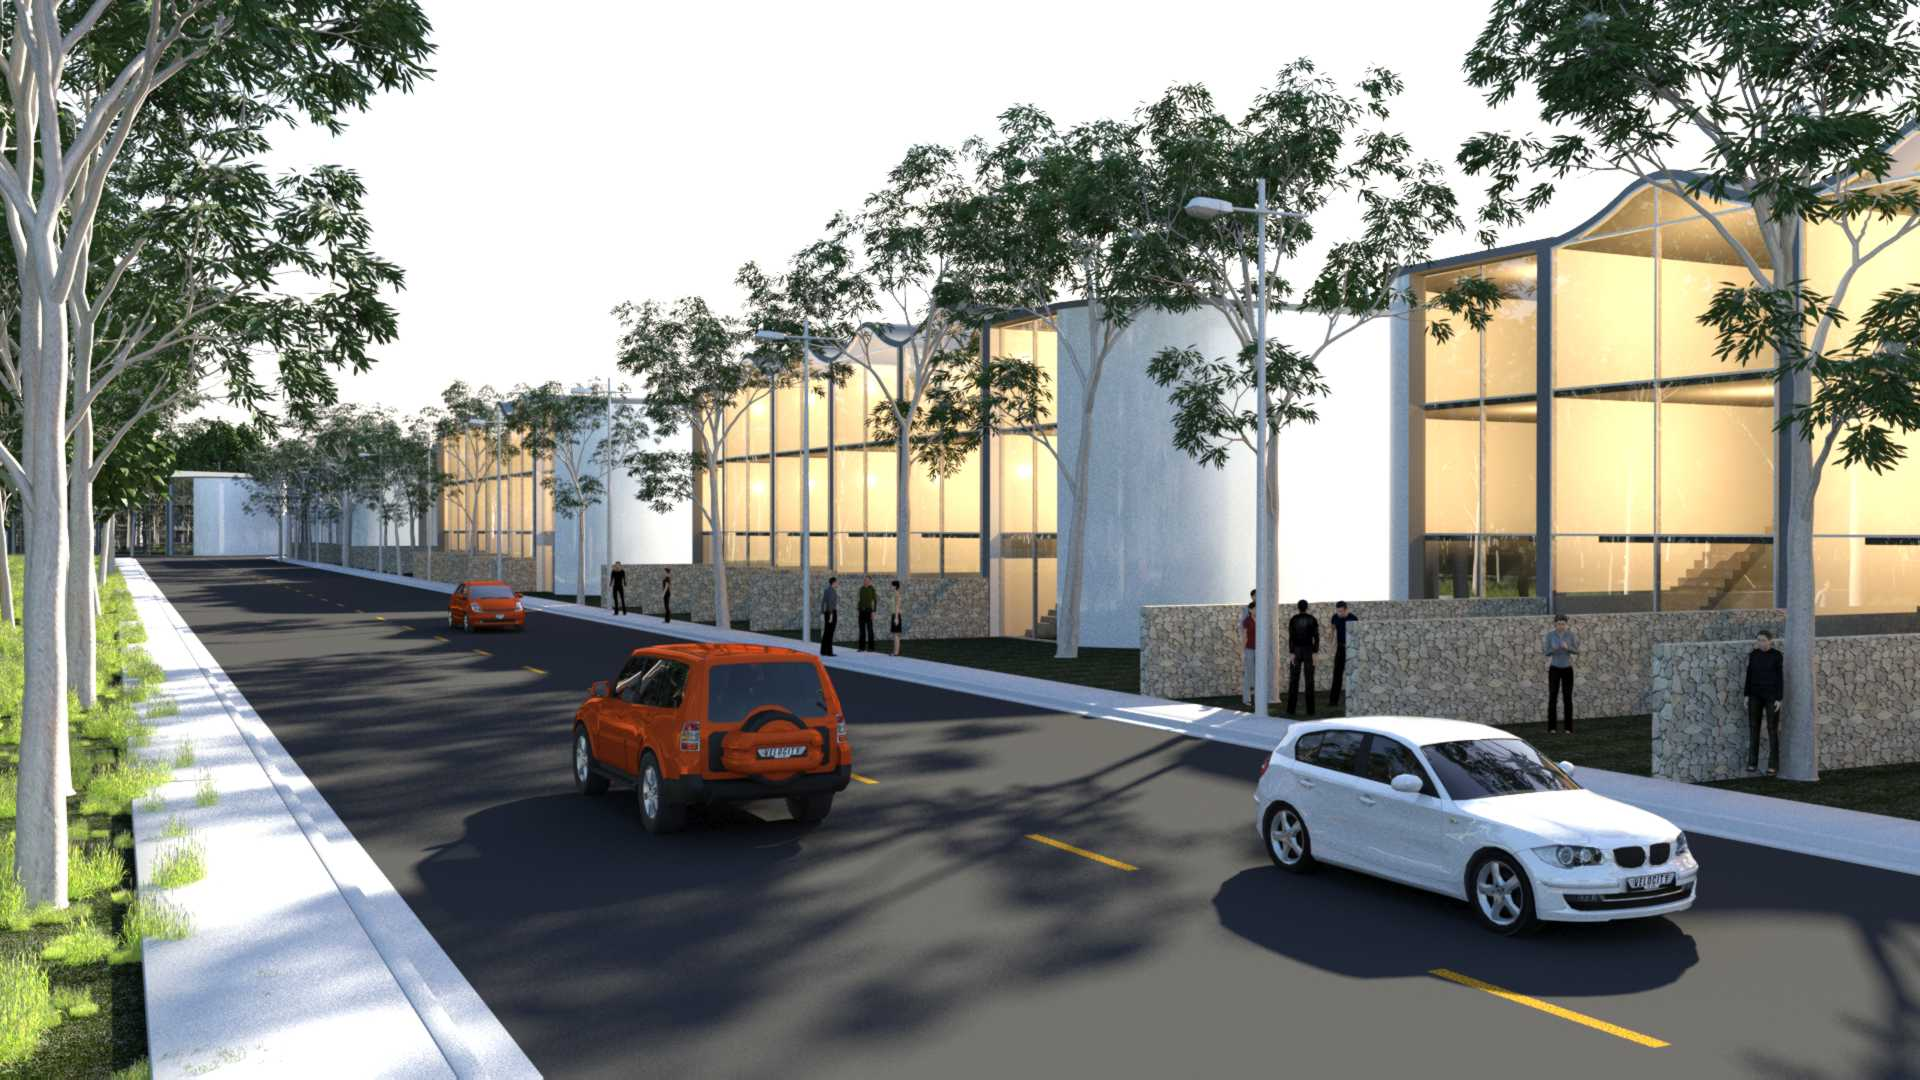 290 West Dapto Road architectural impression 80% FSR medl.jpg